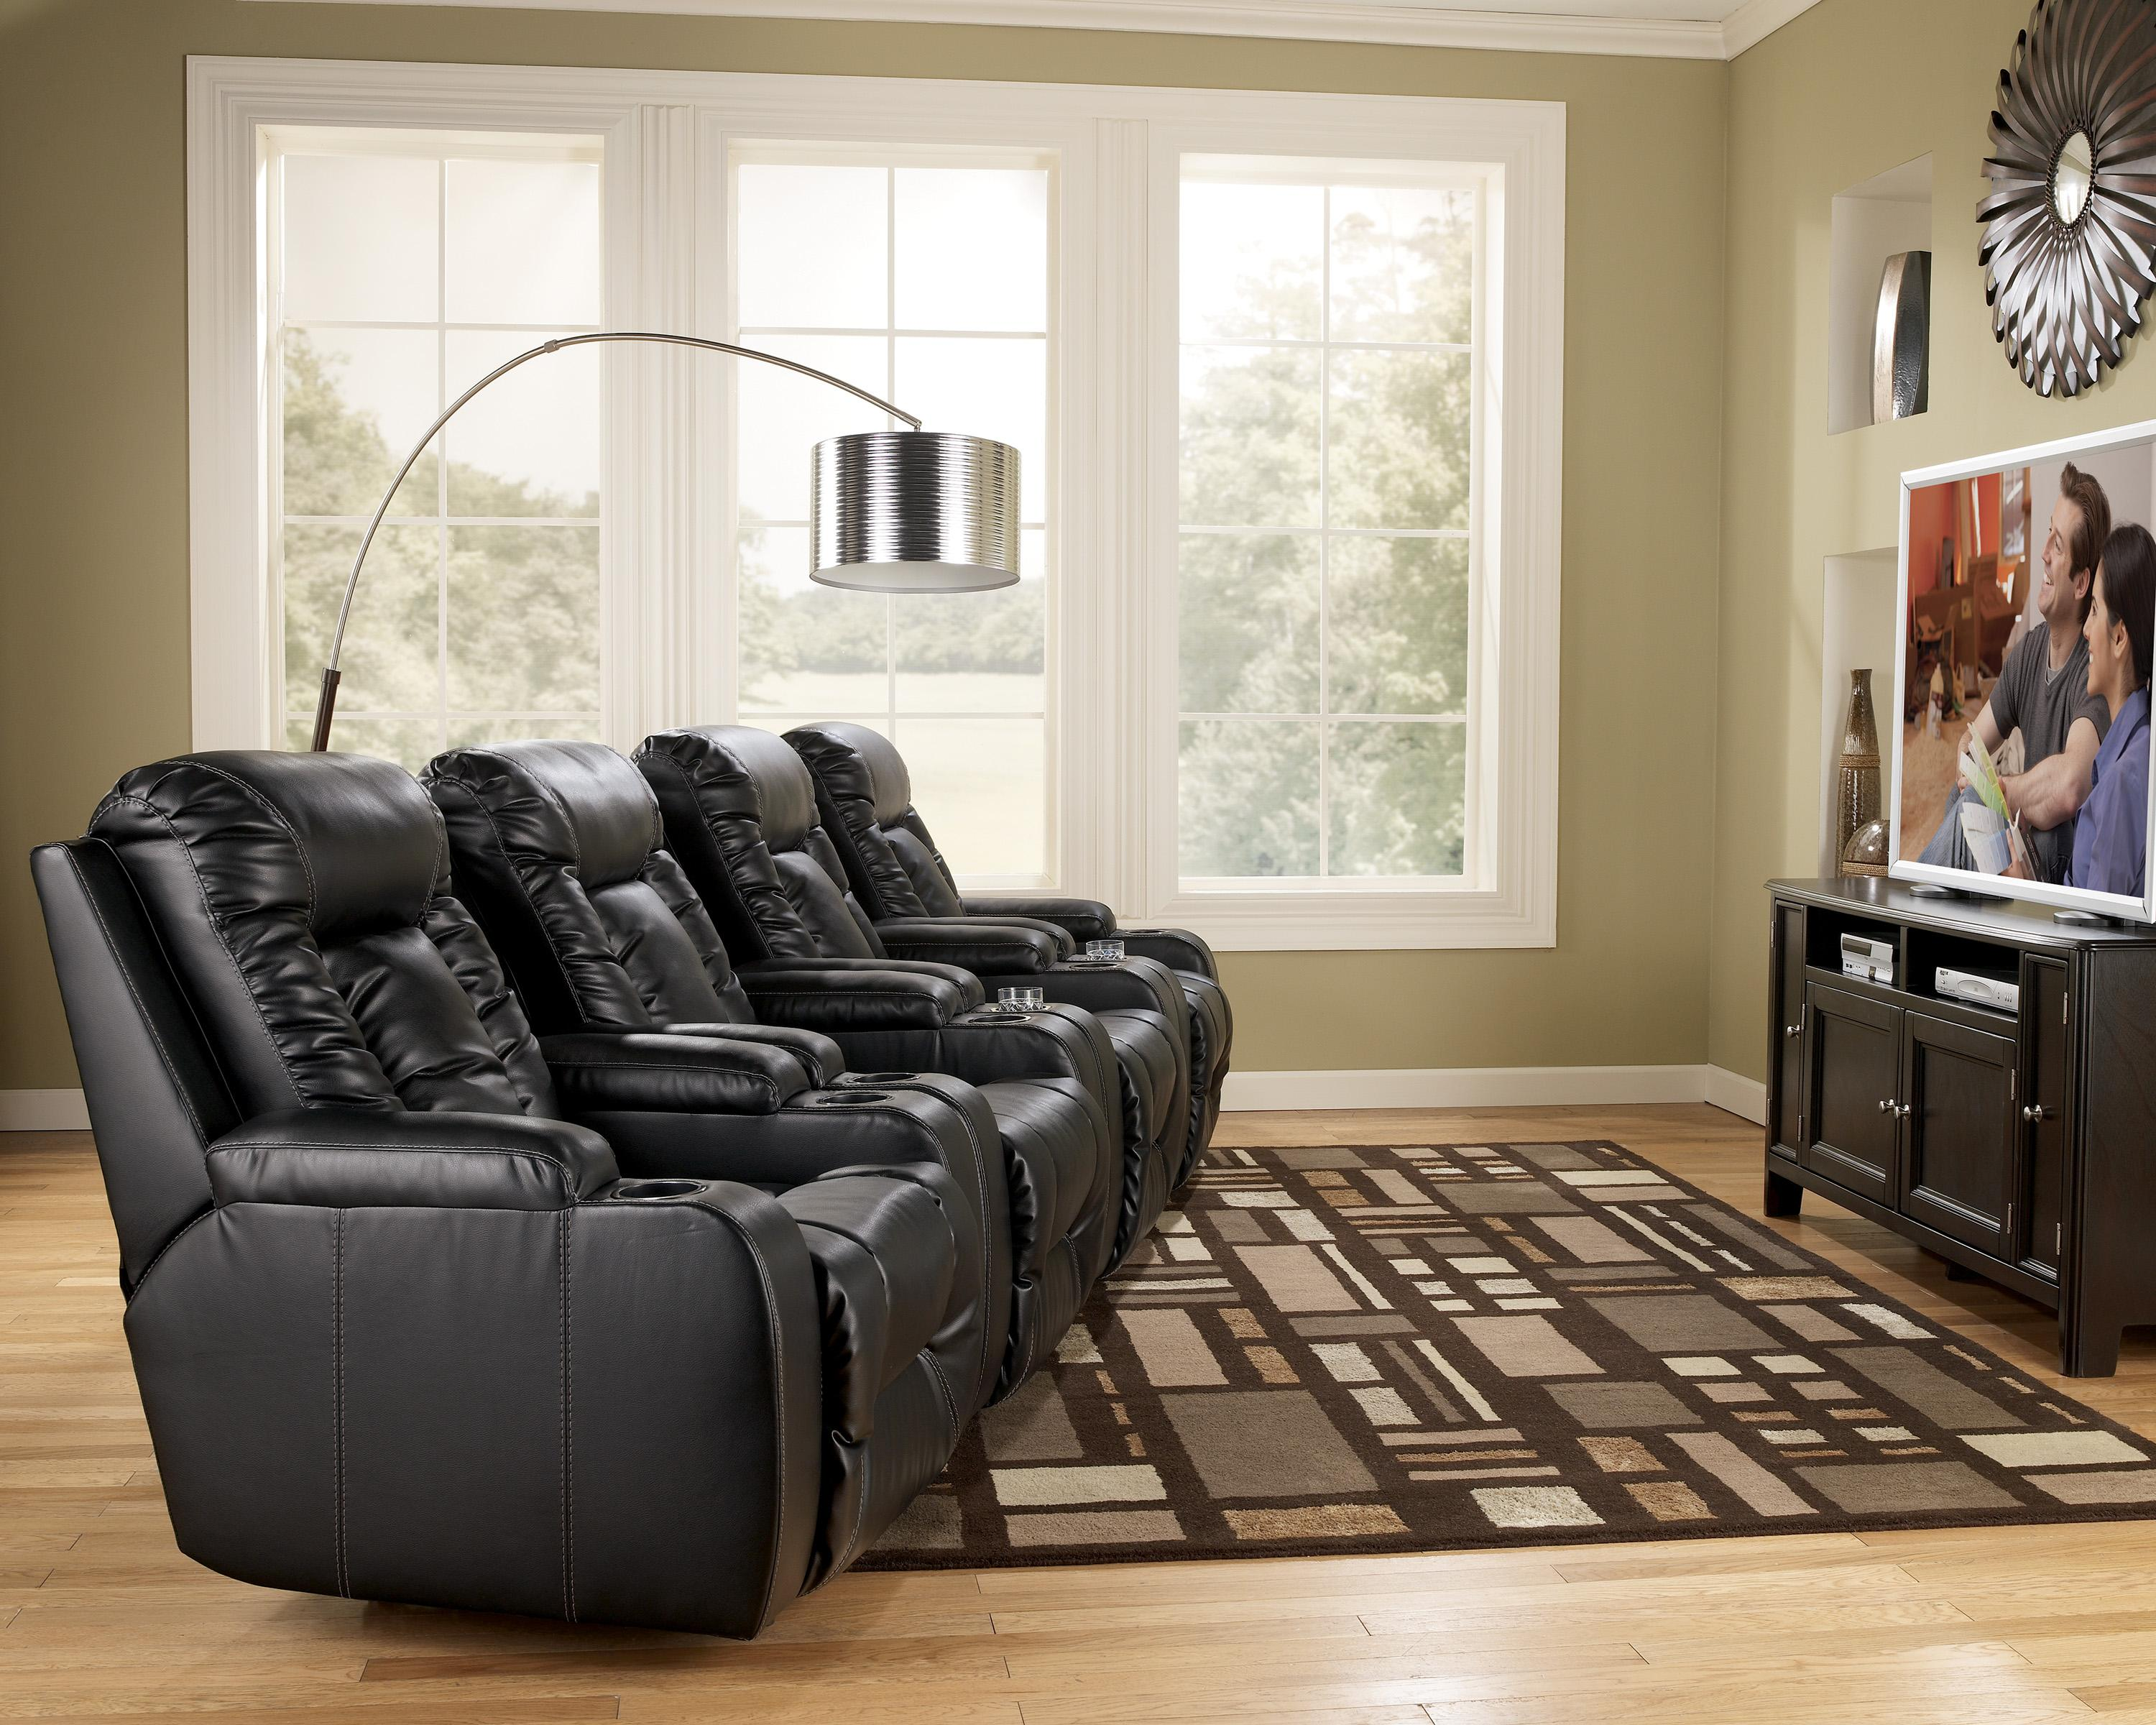 Elegant Signature Design By Ashley Matinee DuraBlend®   Eclipse 4 Piece Theater  Seating Group | Northeast Factory Direct | Theater Seating Cleveland,  Eastlake, ...